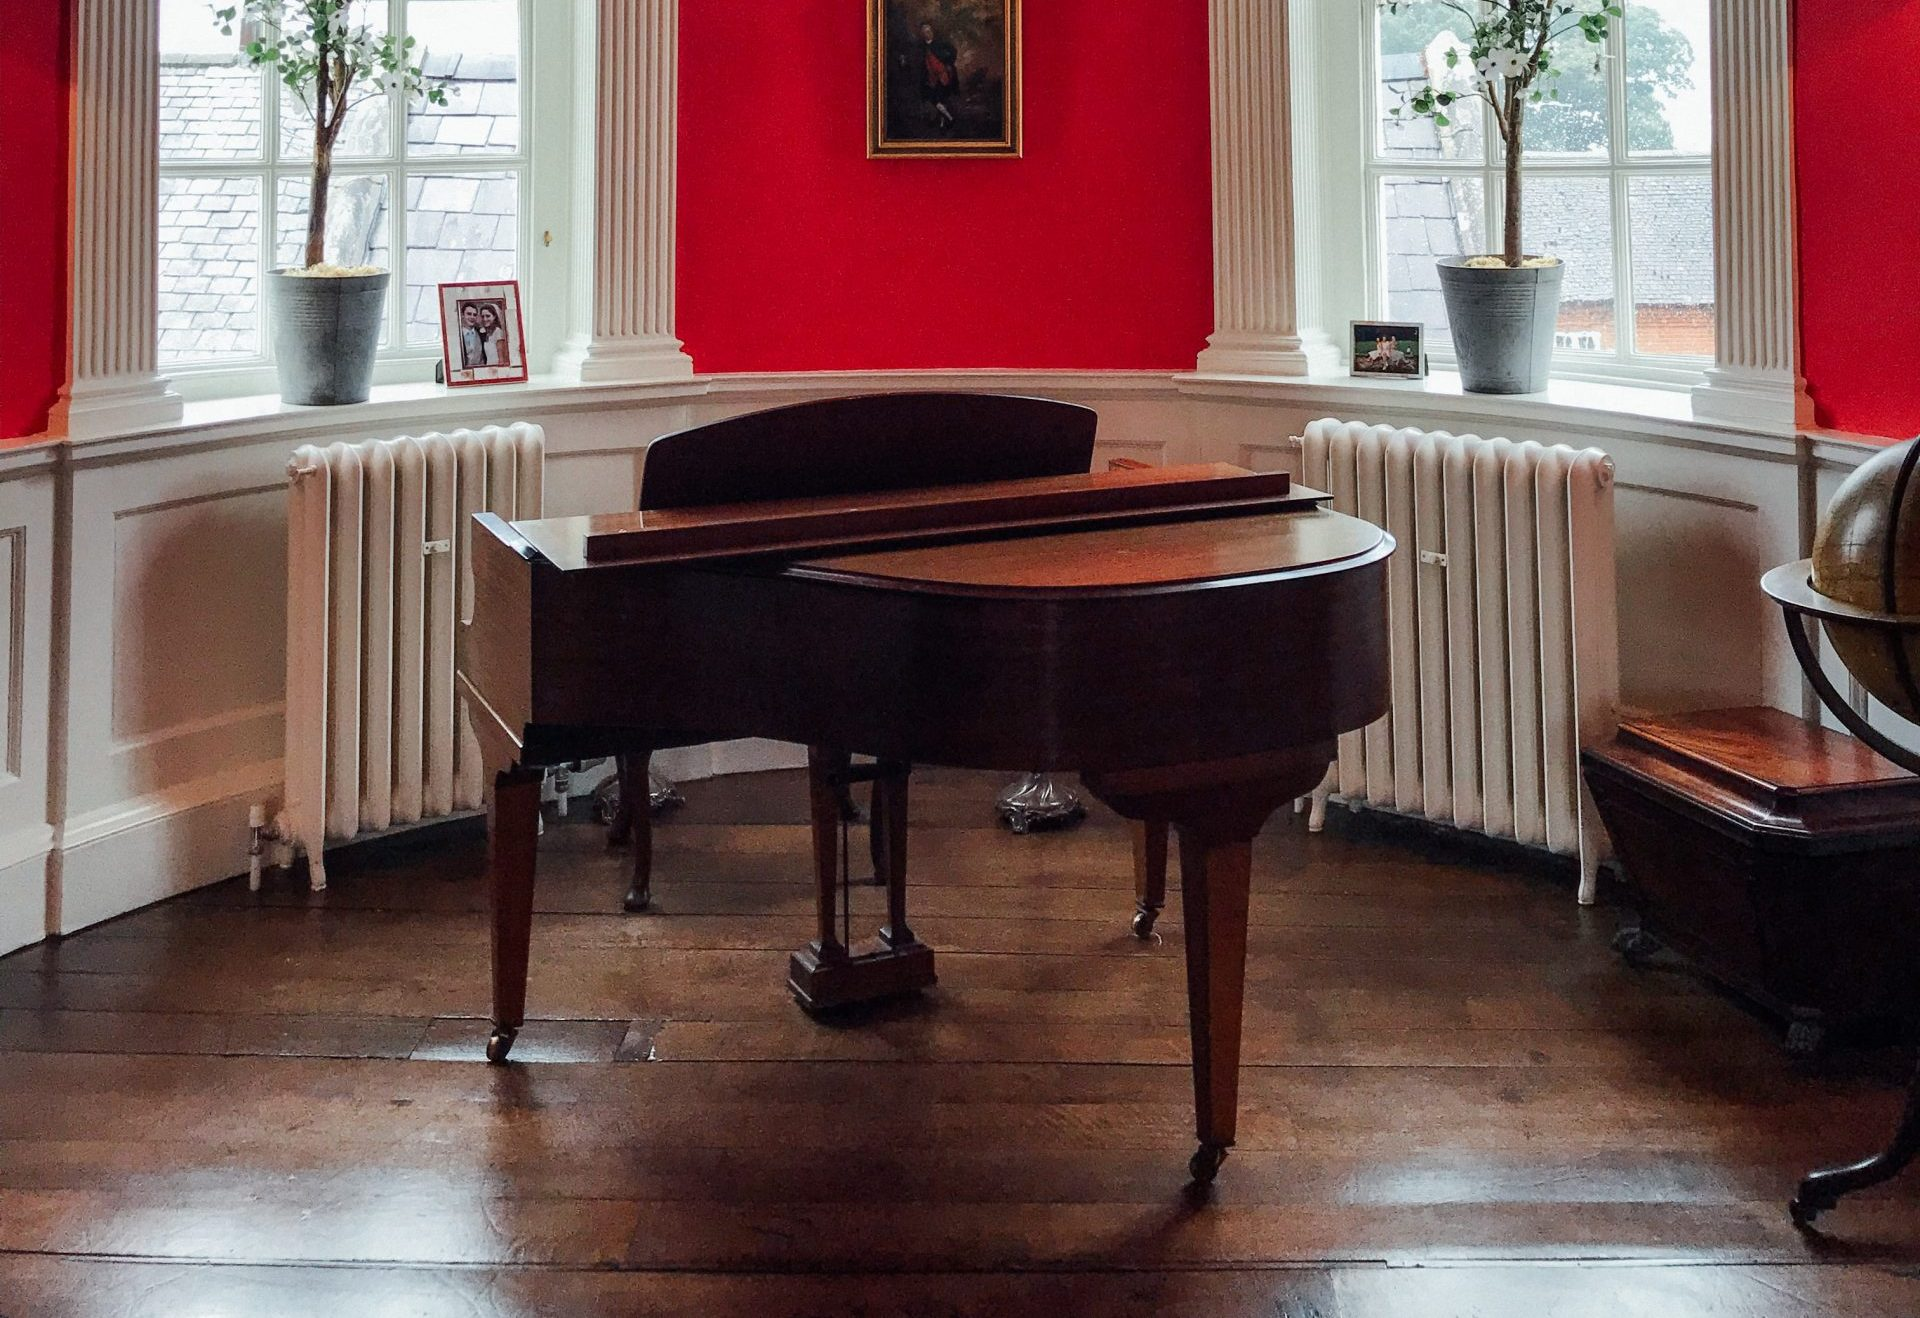 brown piano in a red room